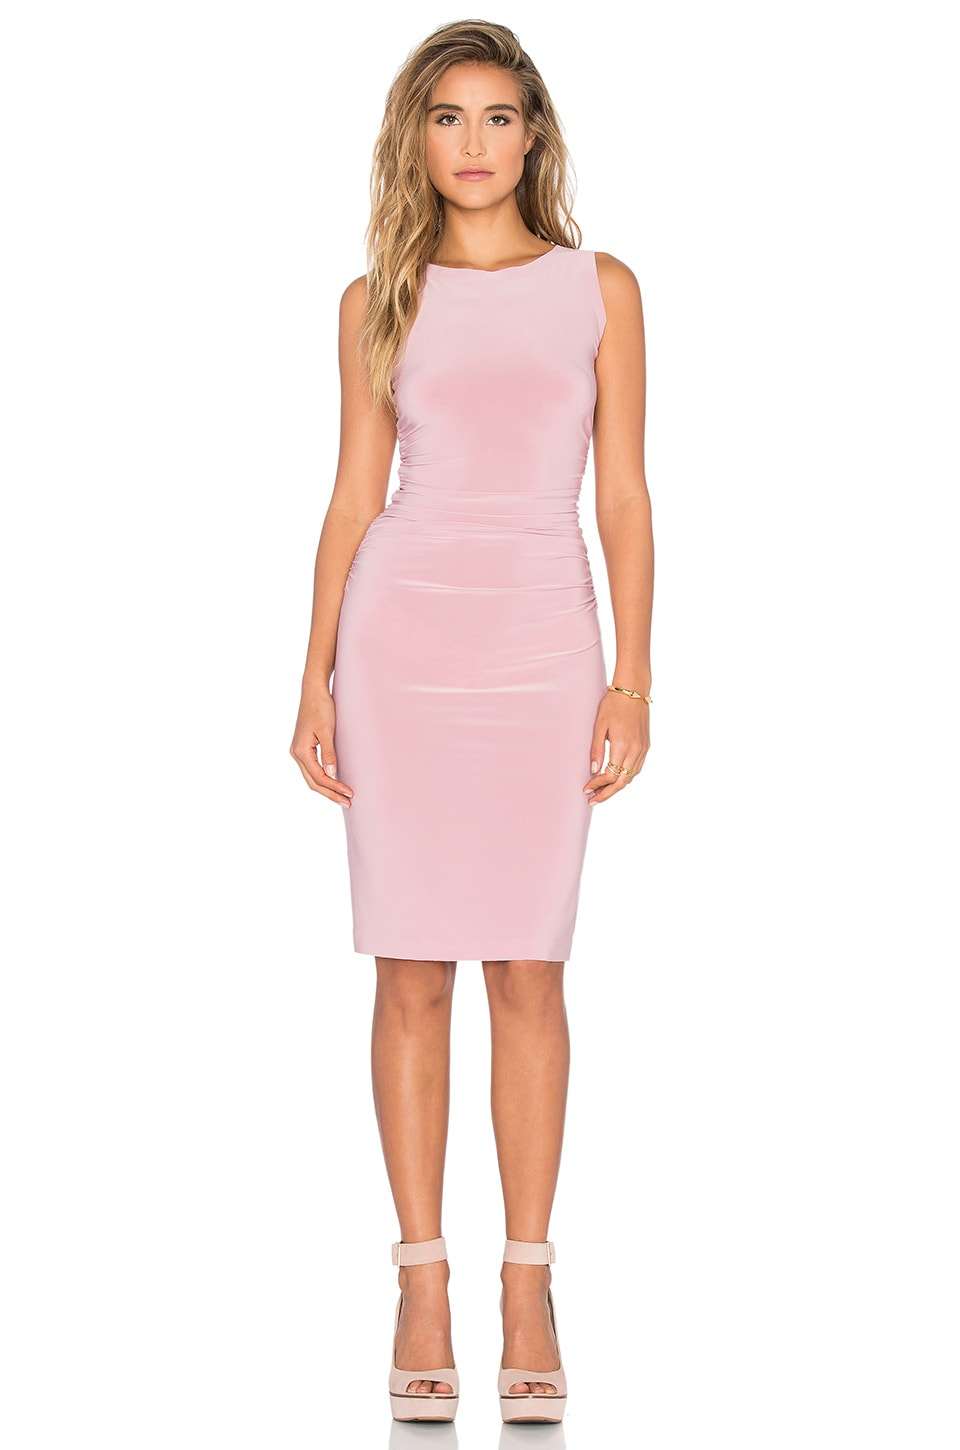 Norma Kamali KAMALIKULTURE Shirred Waist Dress in Pink